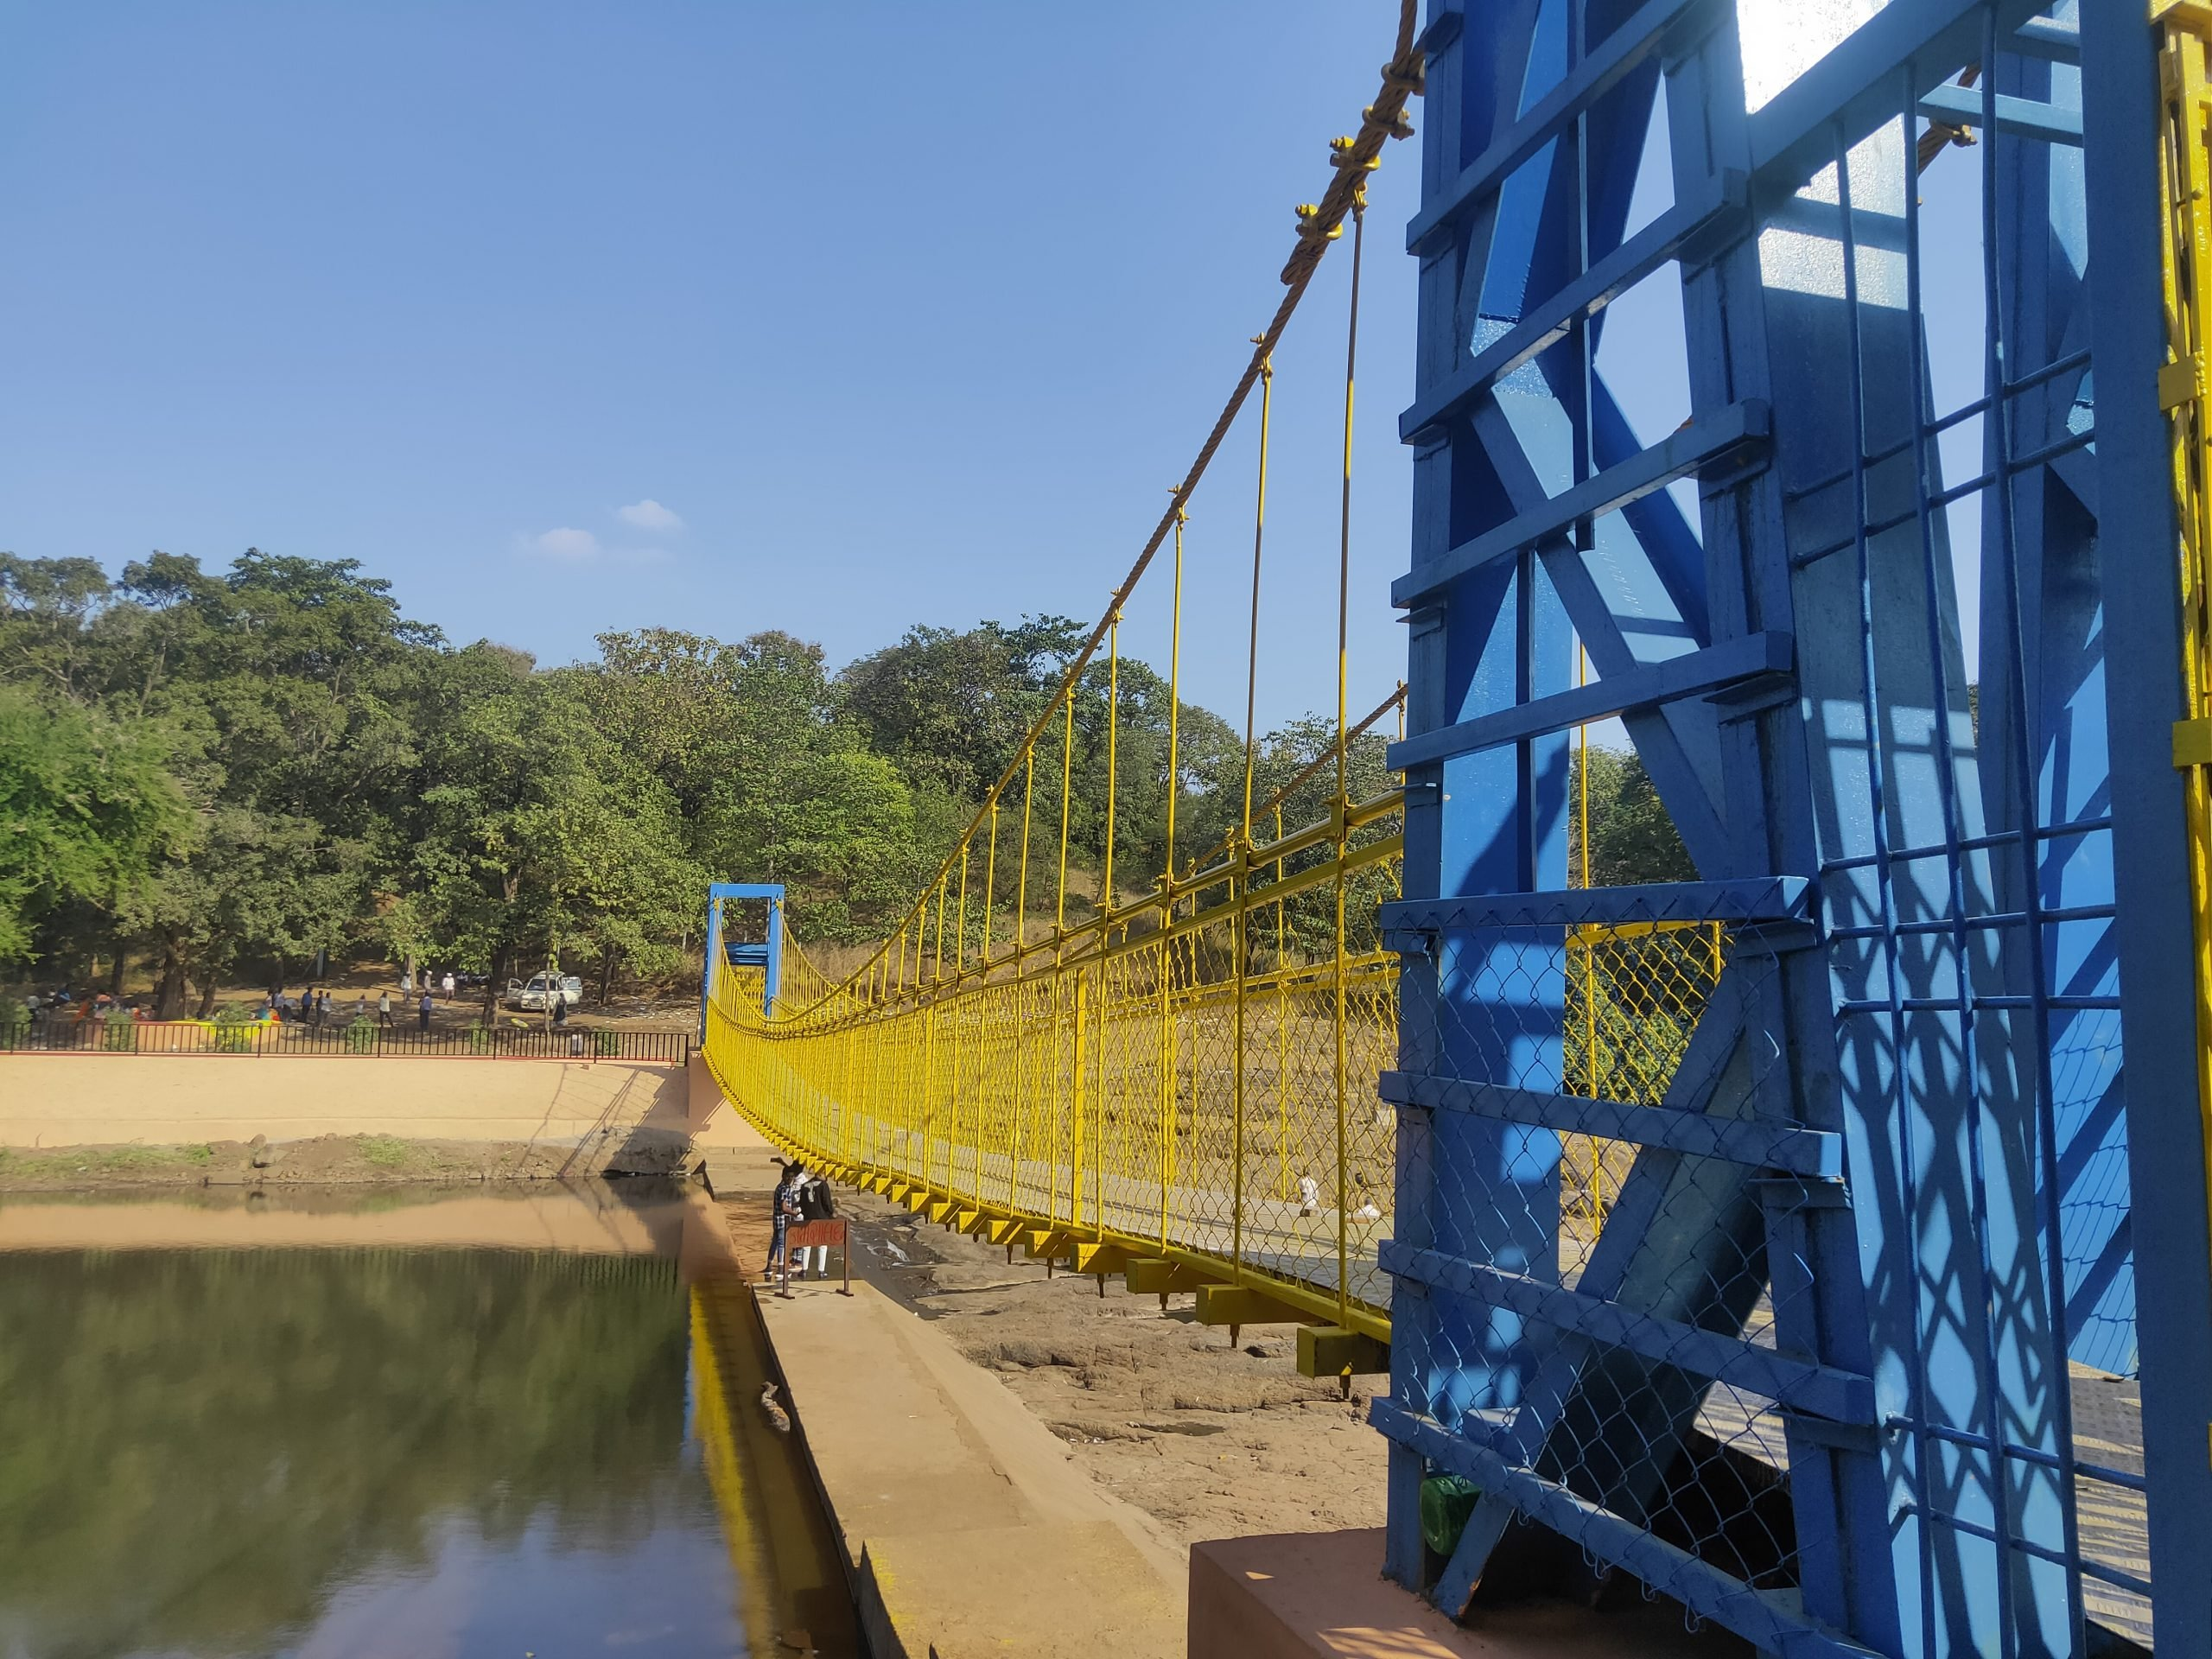 A cable strayed bridge